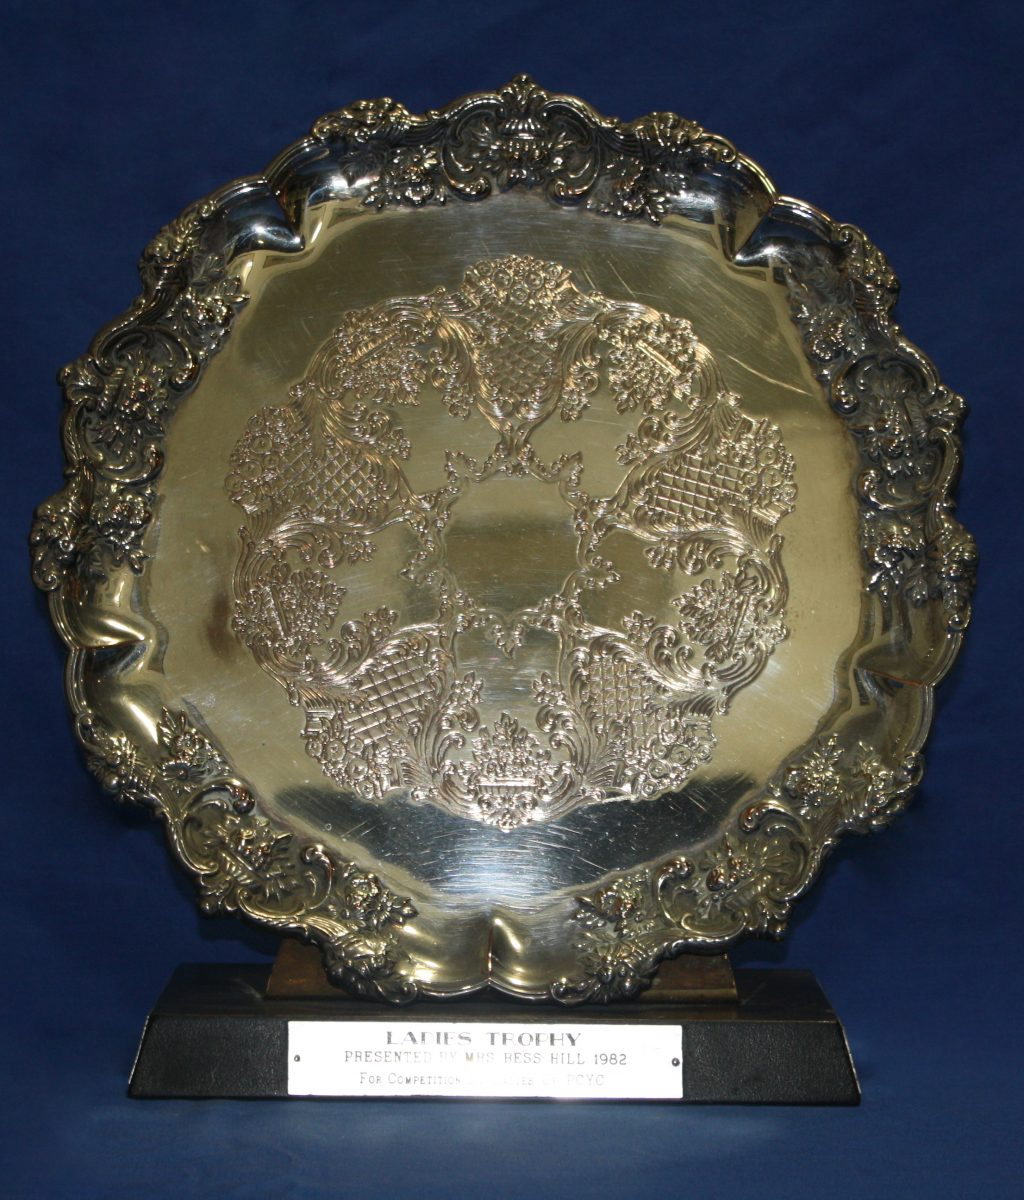 Ladies Trophy